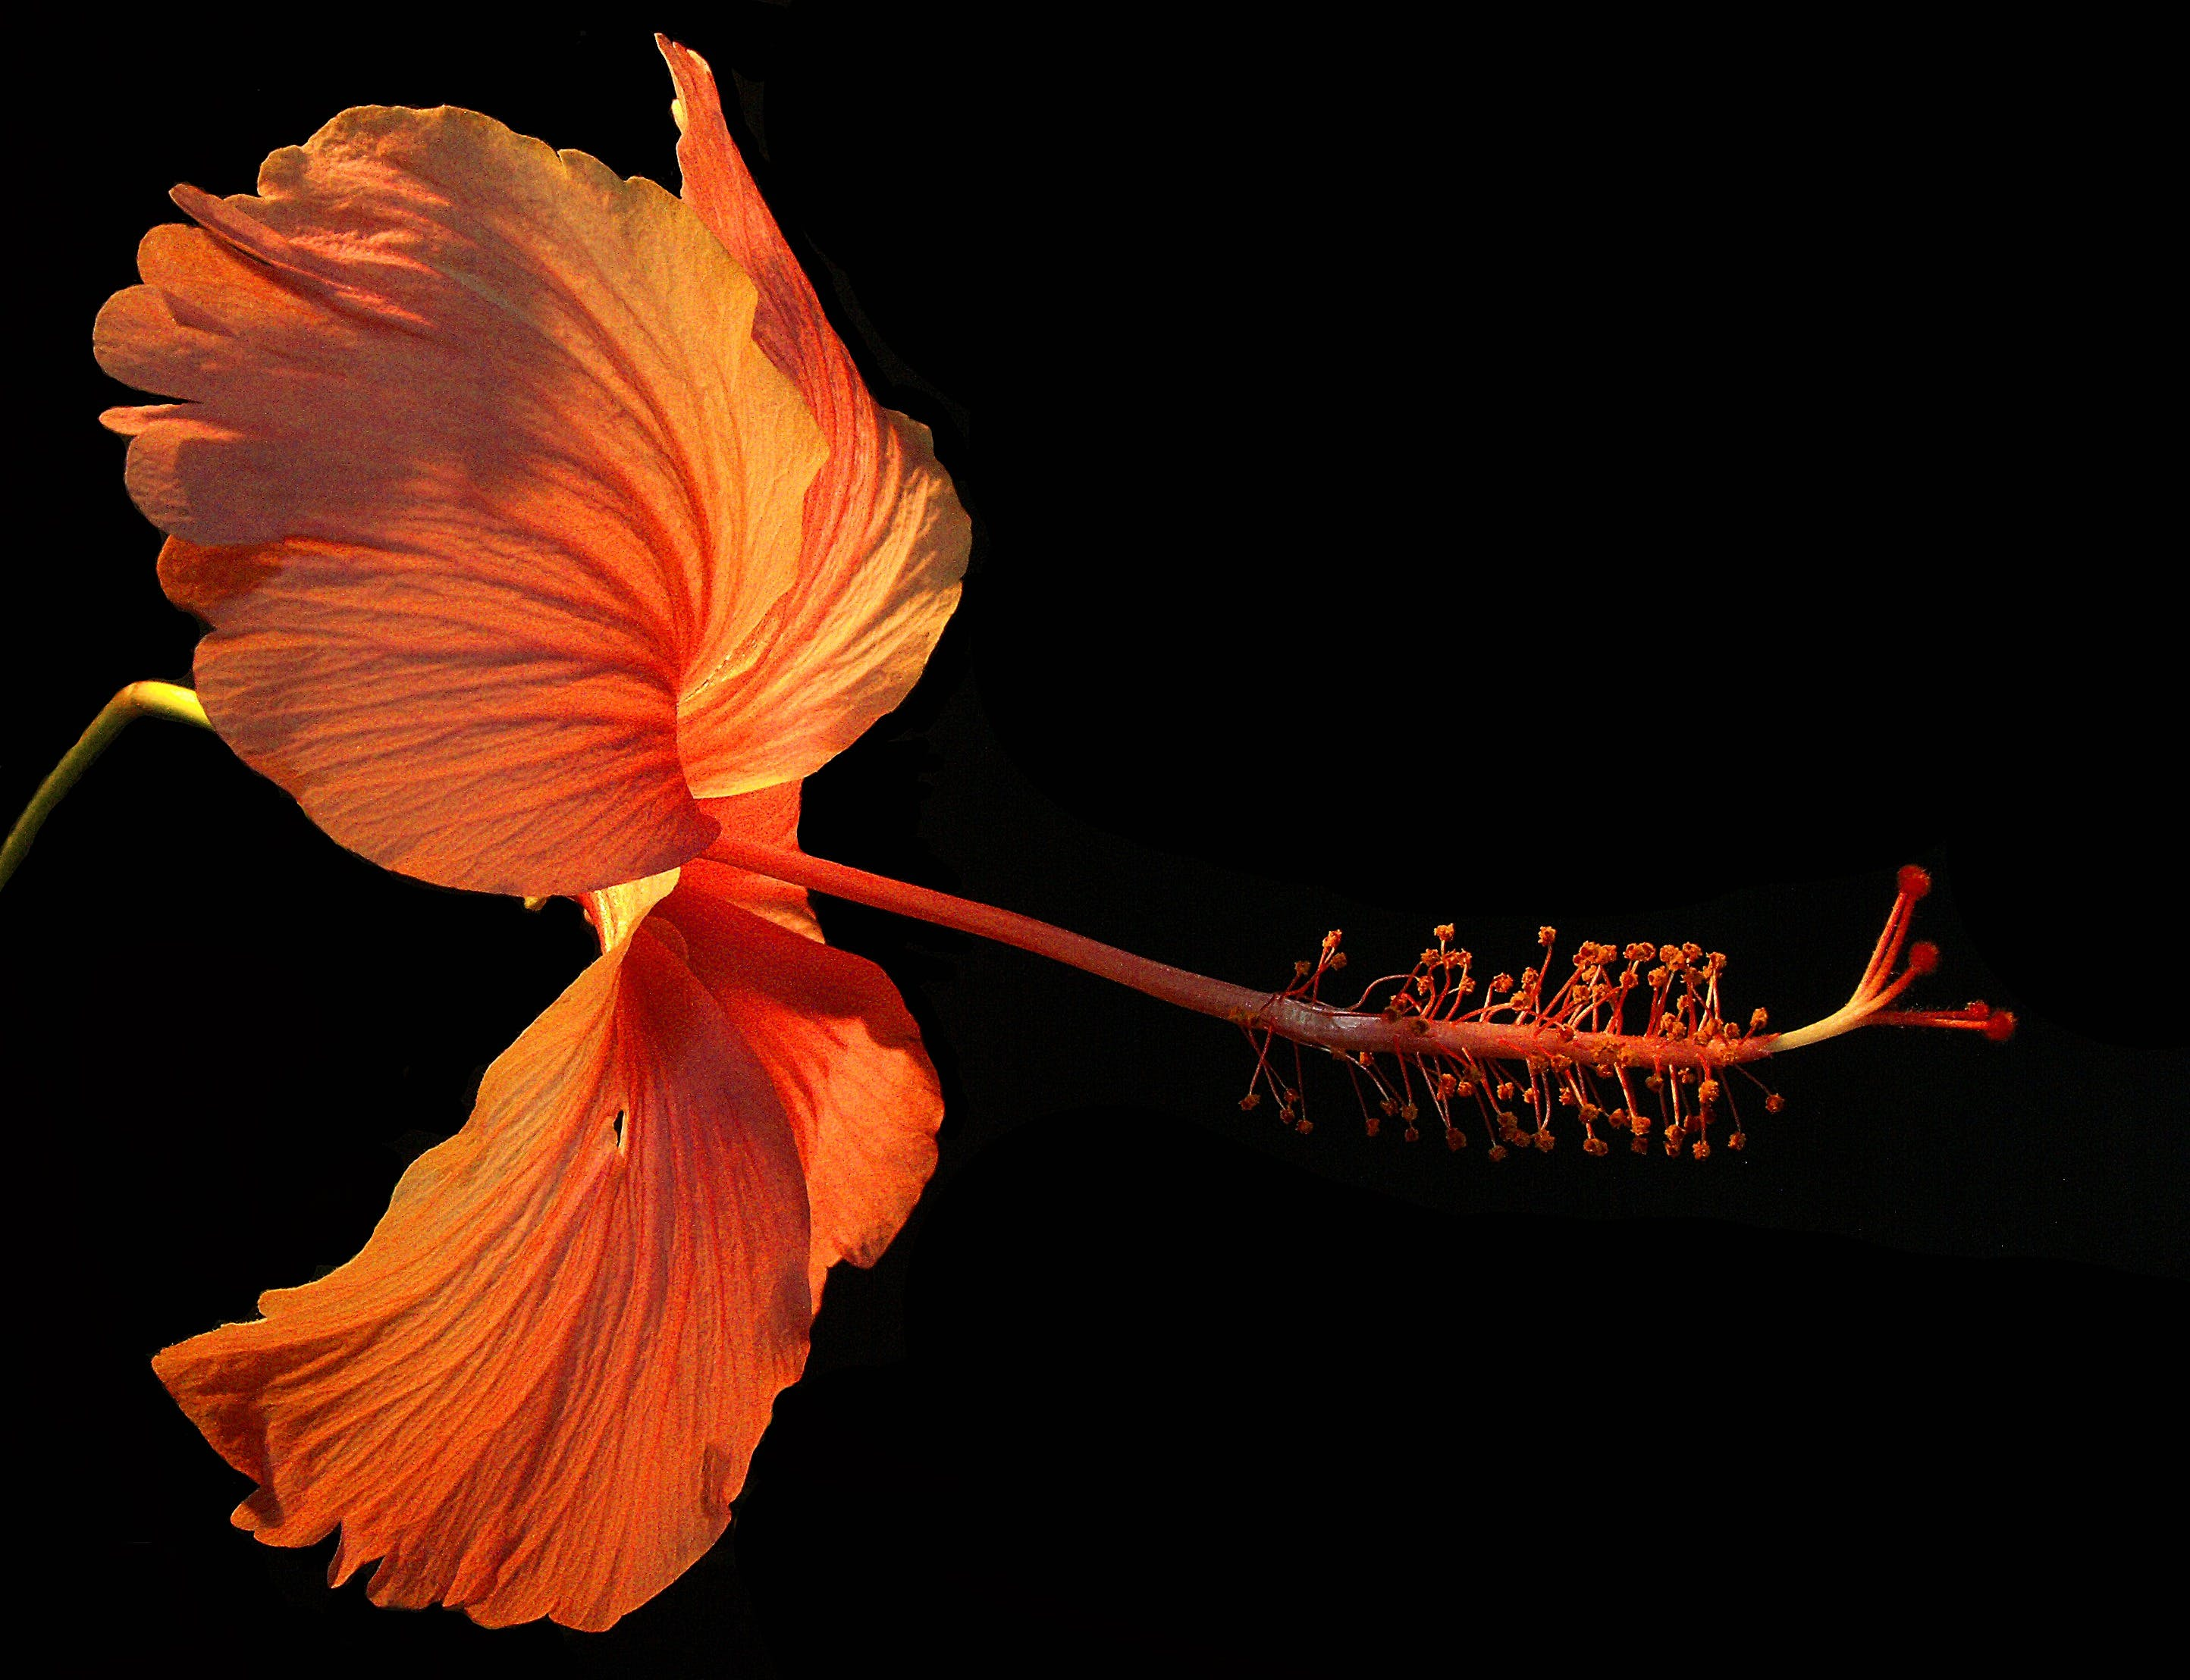 Orange Hibiscus Flower on Black Background